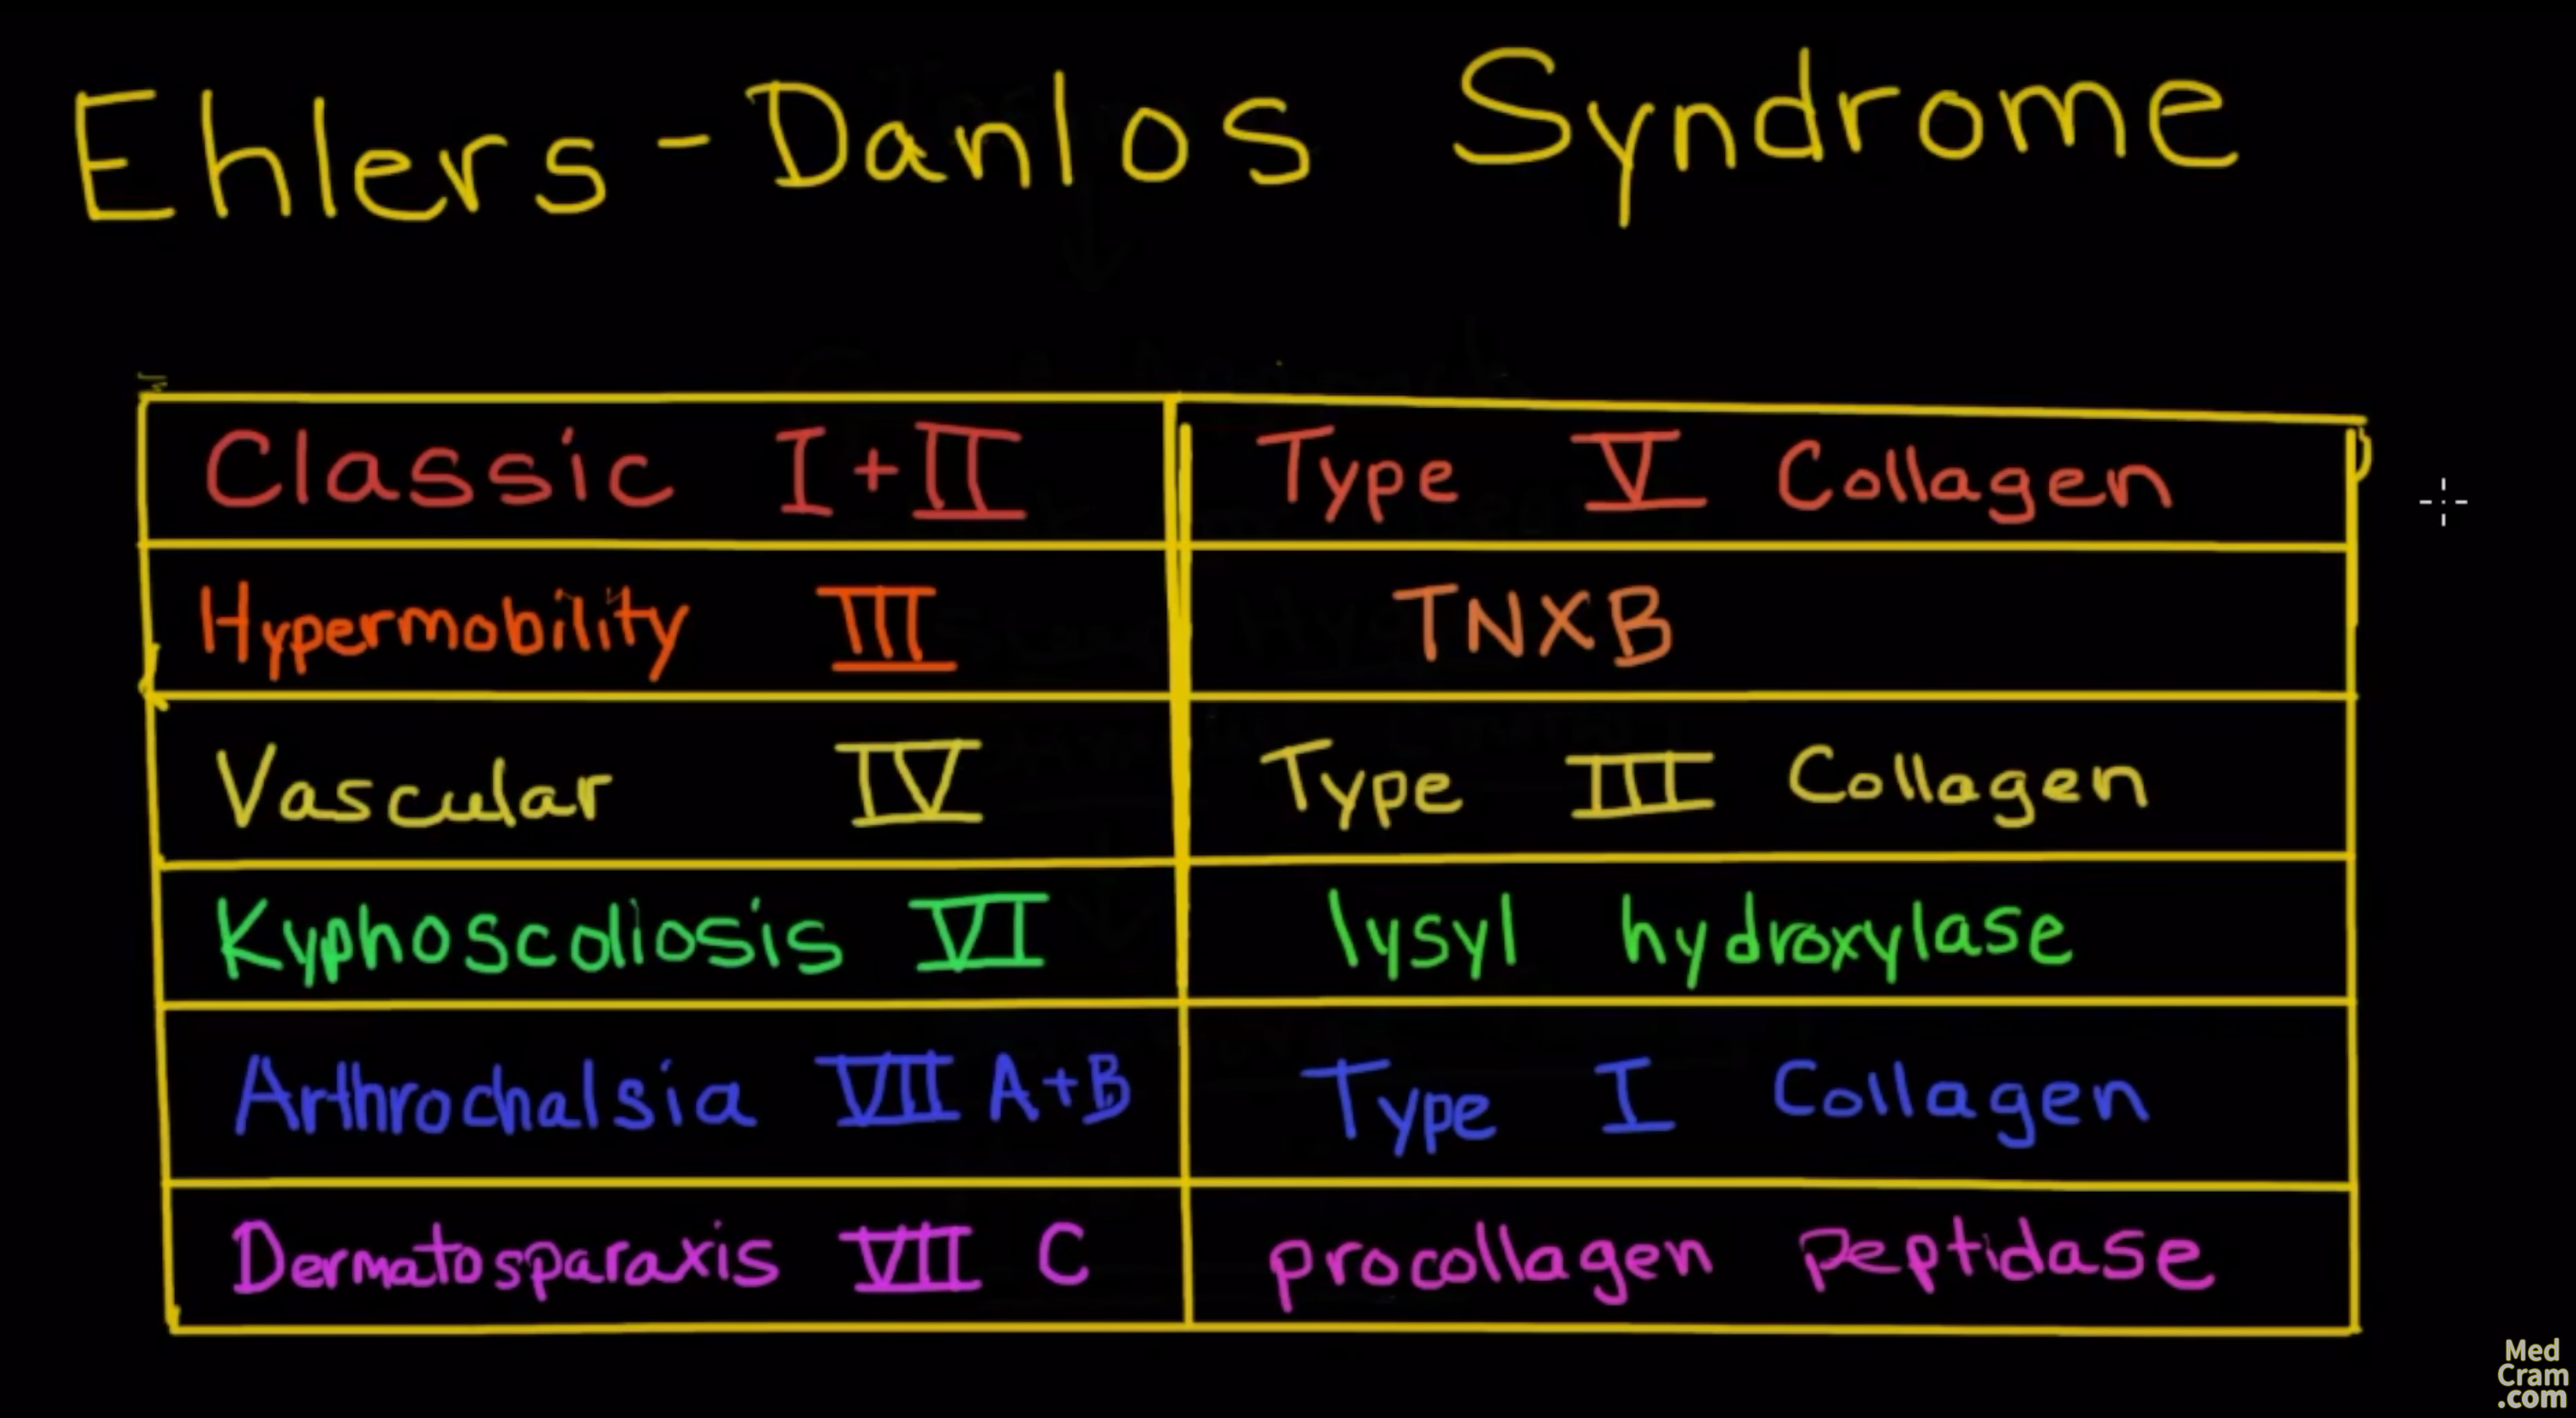 Ehlers Danlos Syndrome Video Explanation